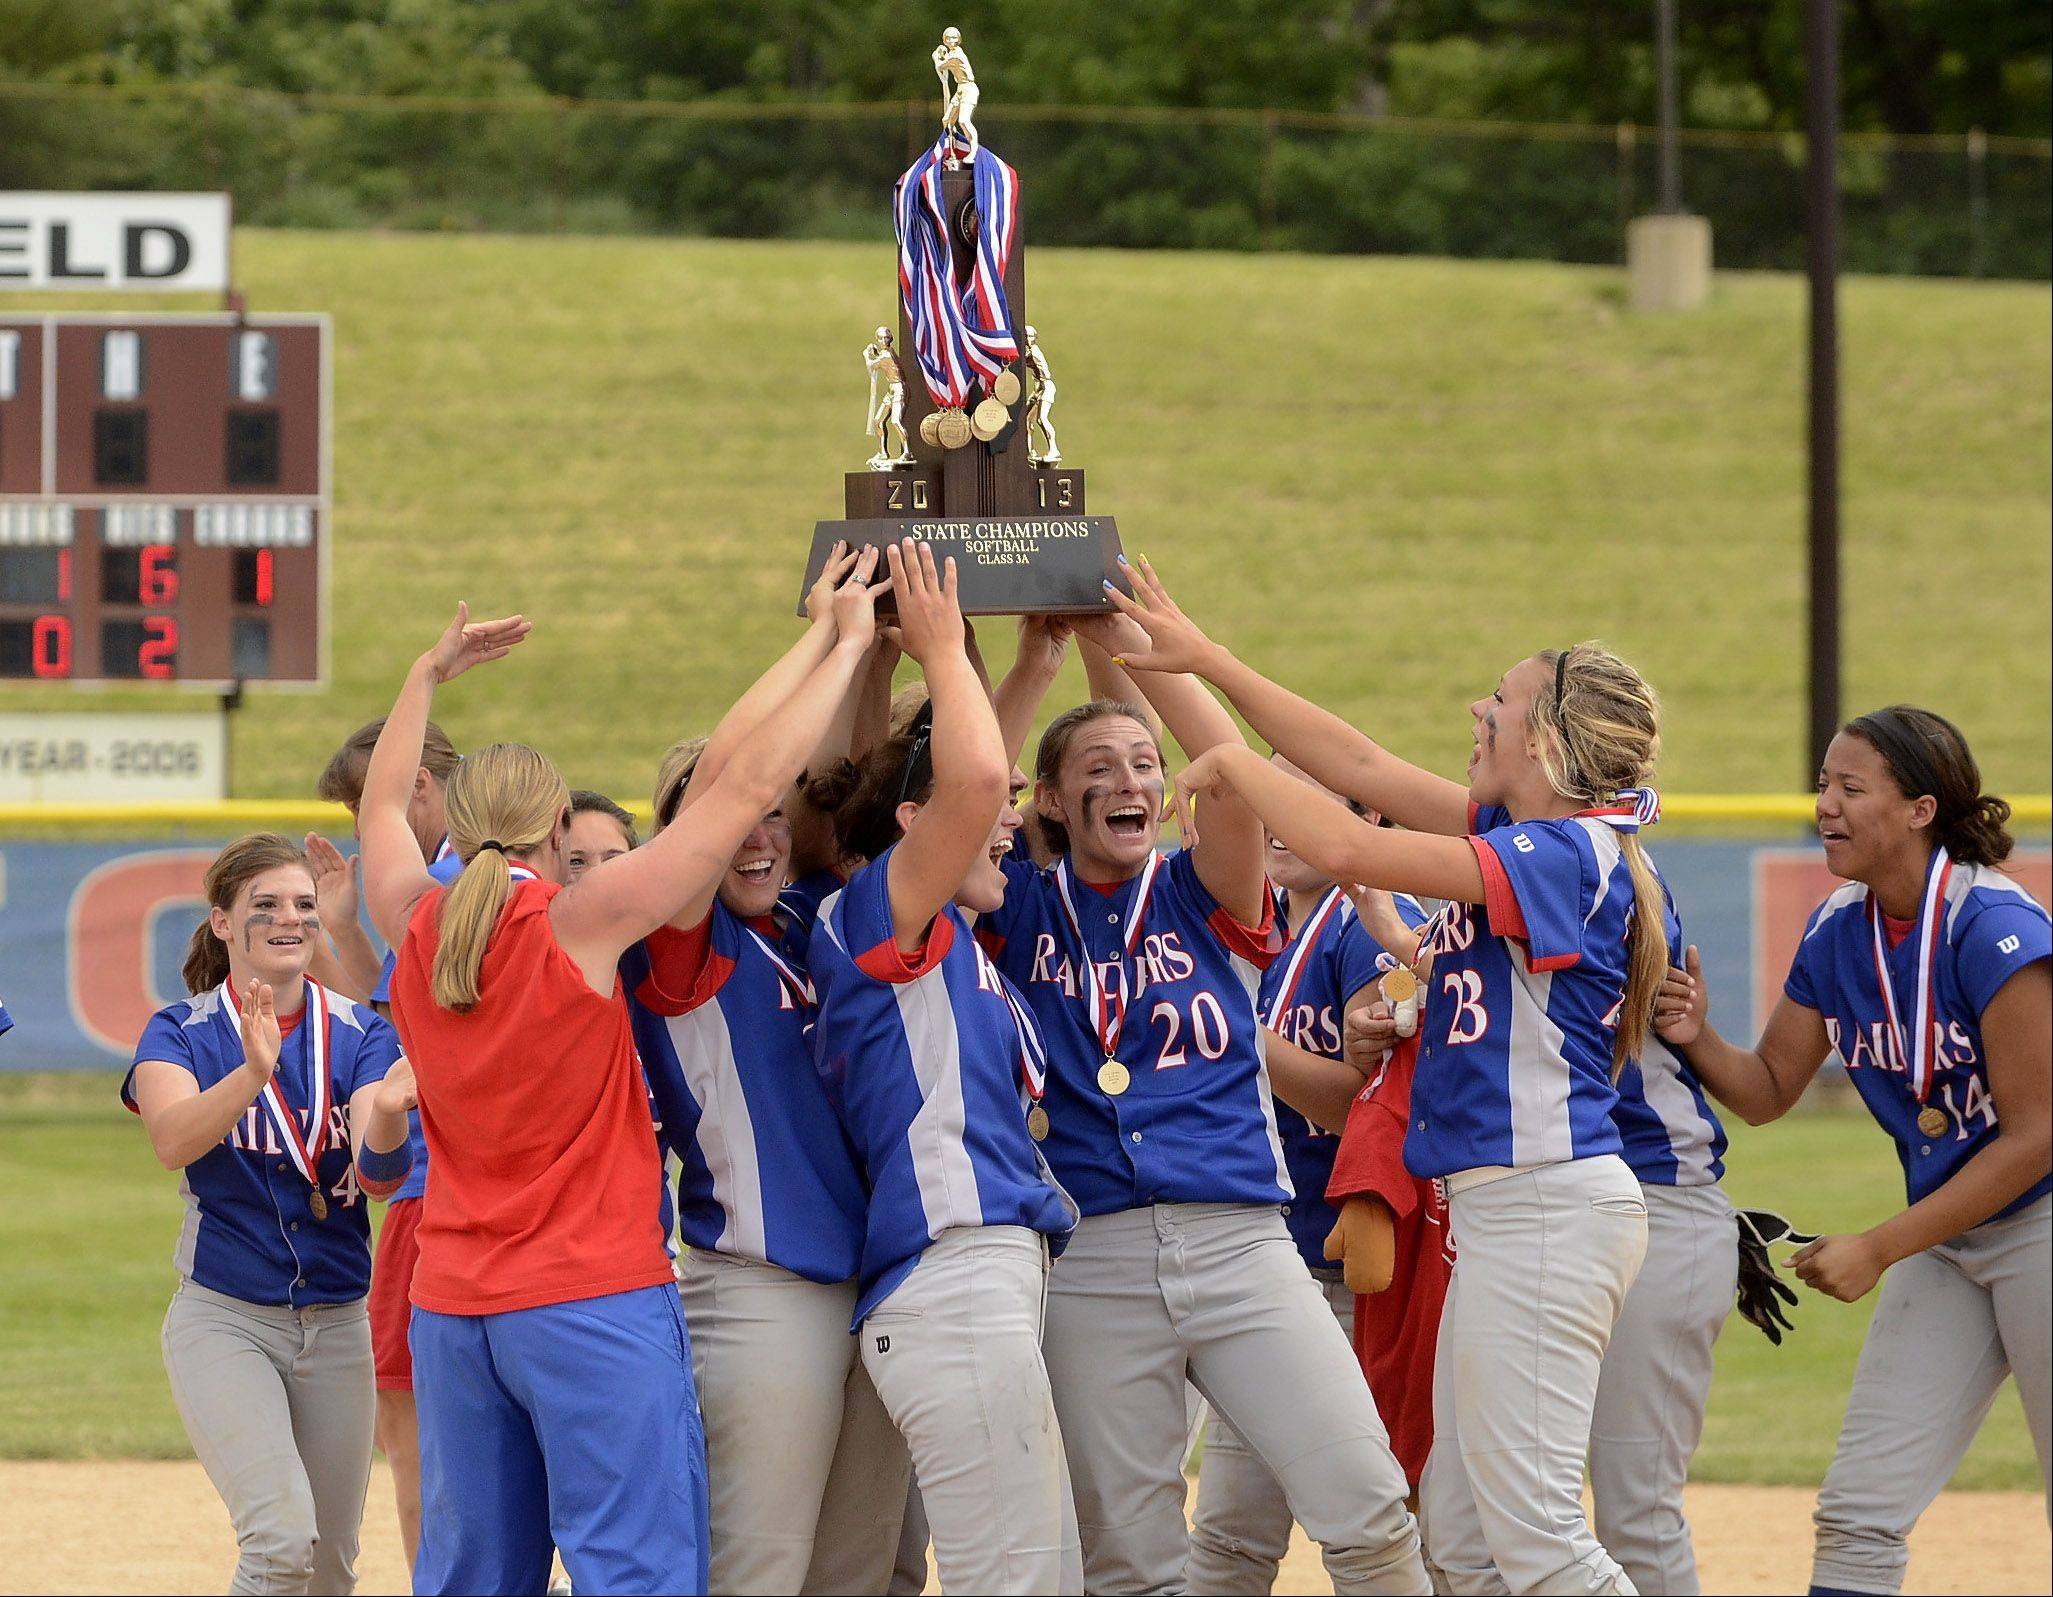 Glenbard South repeats as the Class 3A state softball champions after defeating Alton Marquette Saturday in East Peoria.